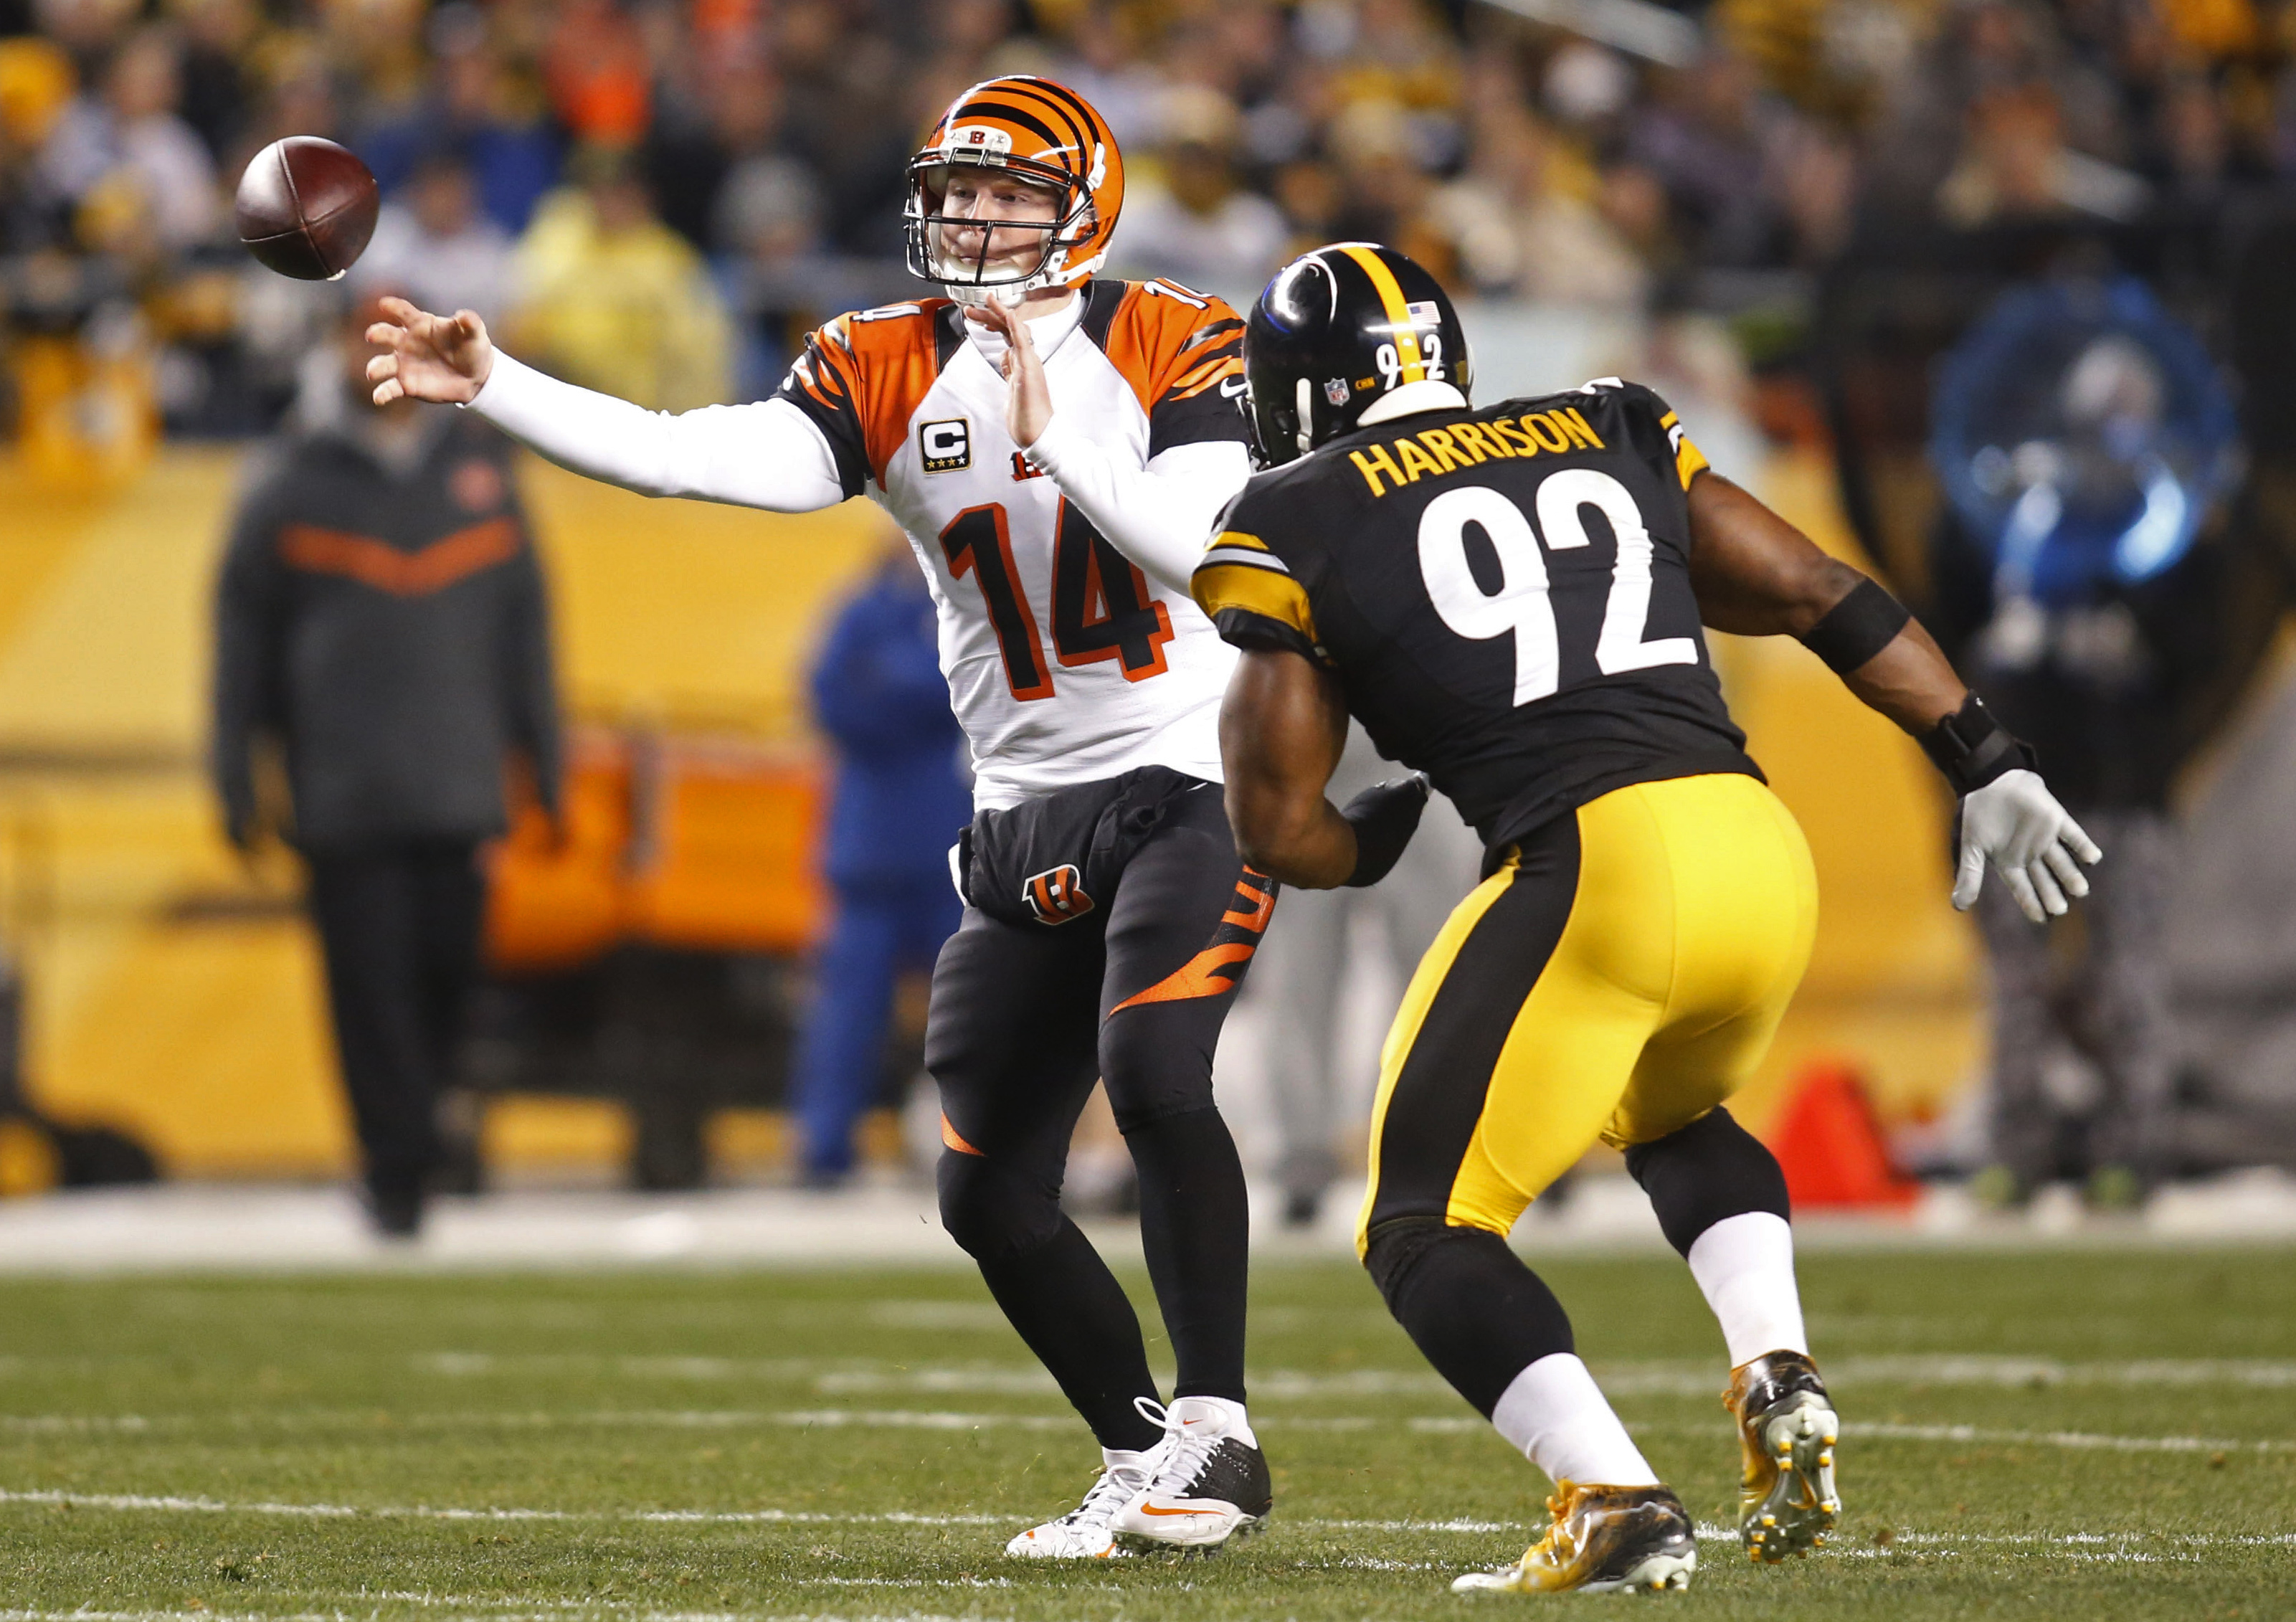 Can James Harrison (92) and the Steelers spoil the perfect season of QB Andy Dalton and the Bengals? (Charles LeClaire, USA TODAY Sports)